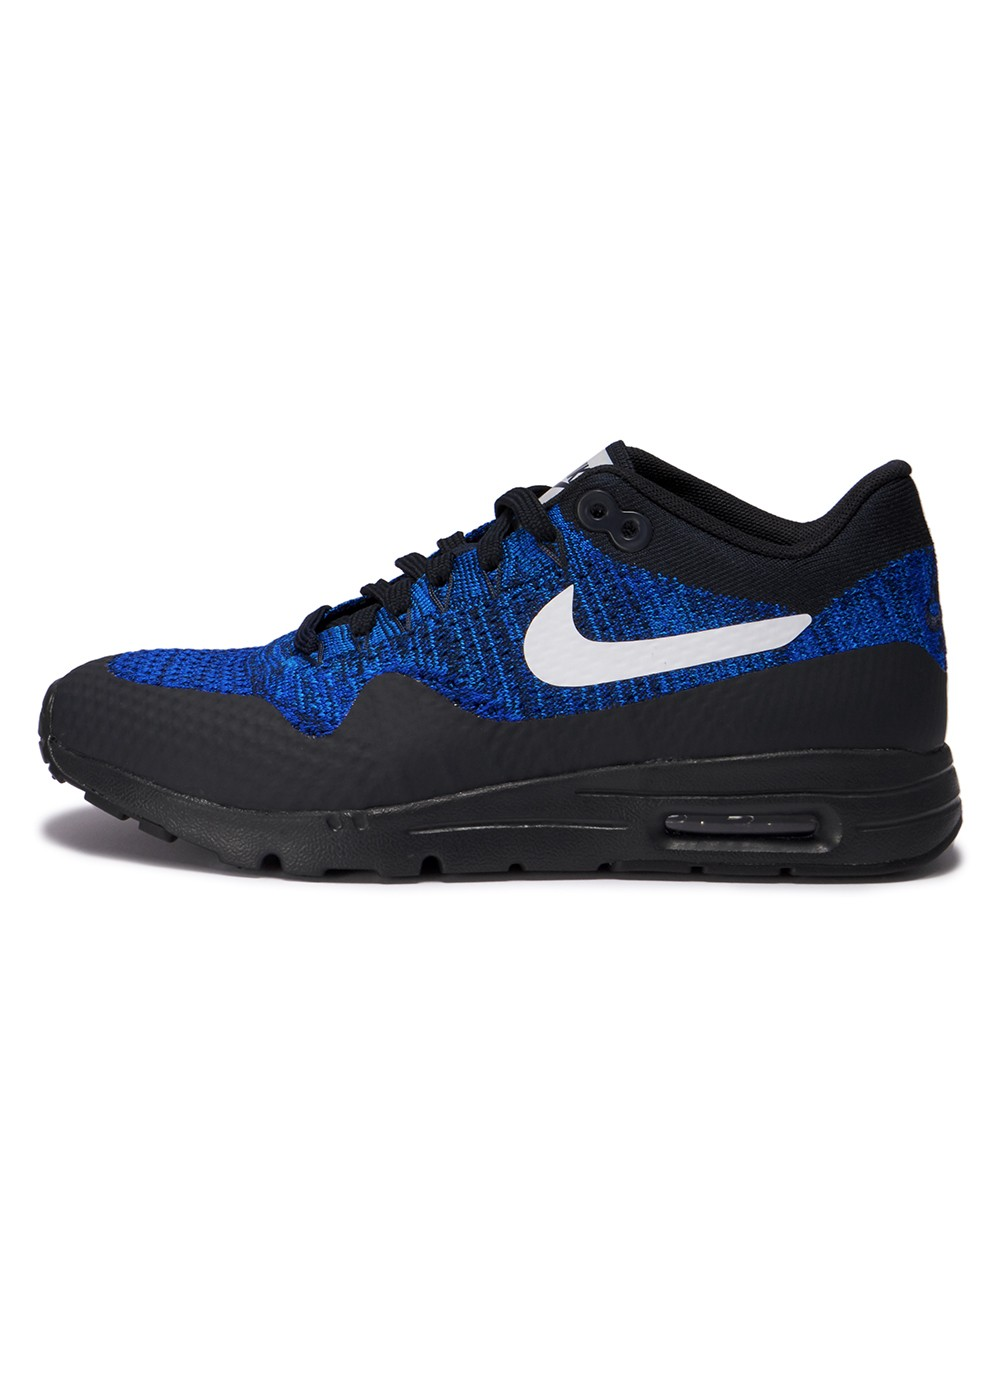 【NIKE】WMNS AIR MAX 1 ULTRA FLYKNIT 843387-401|BLUE|スニーカー|Styles